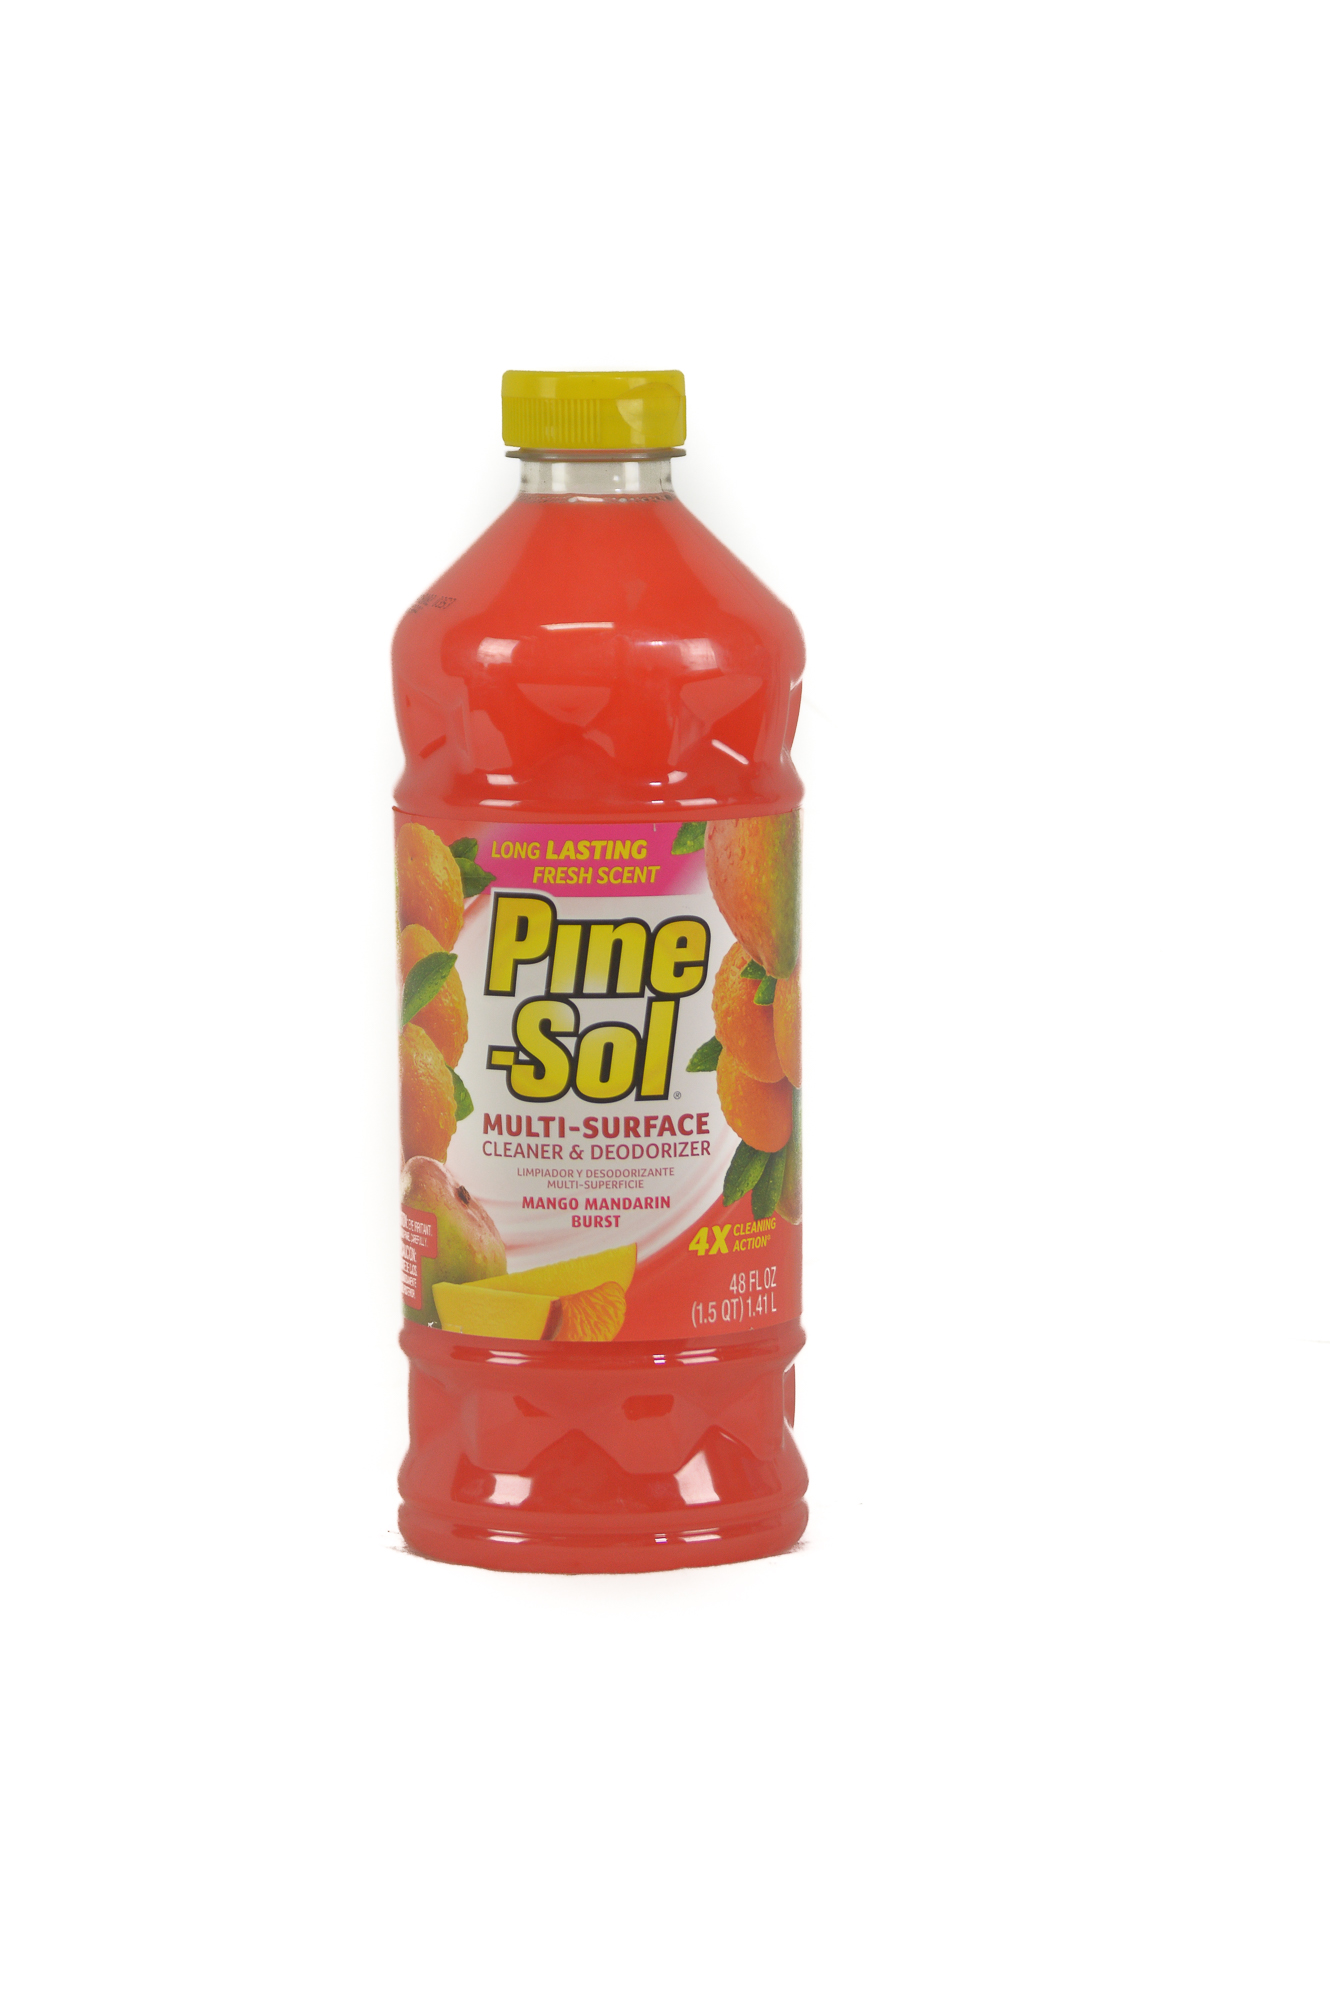 Pinesol multipurpose cleaner 1 x 48 Oz